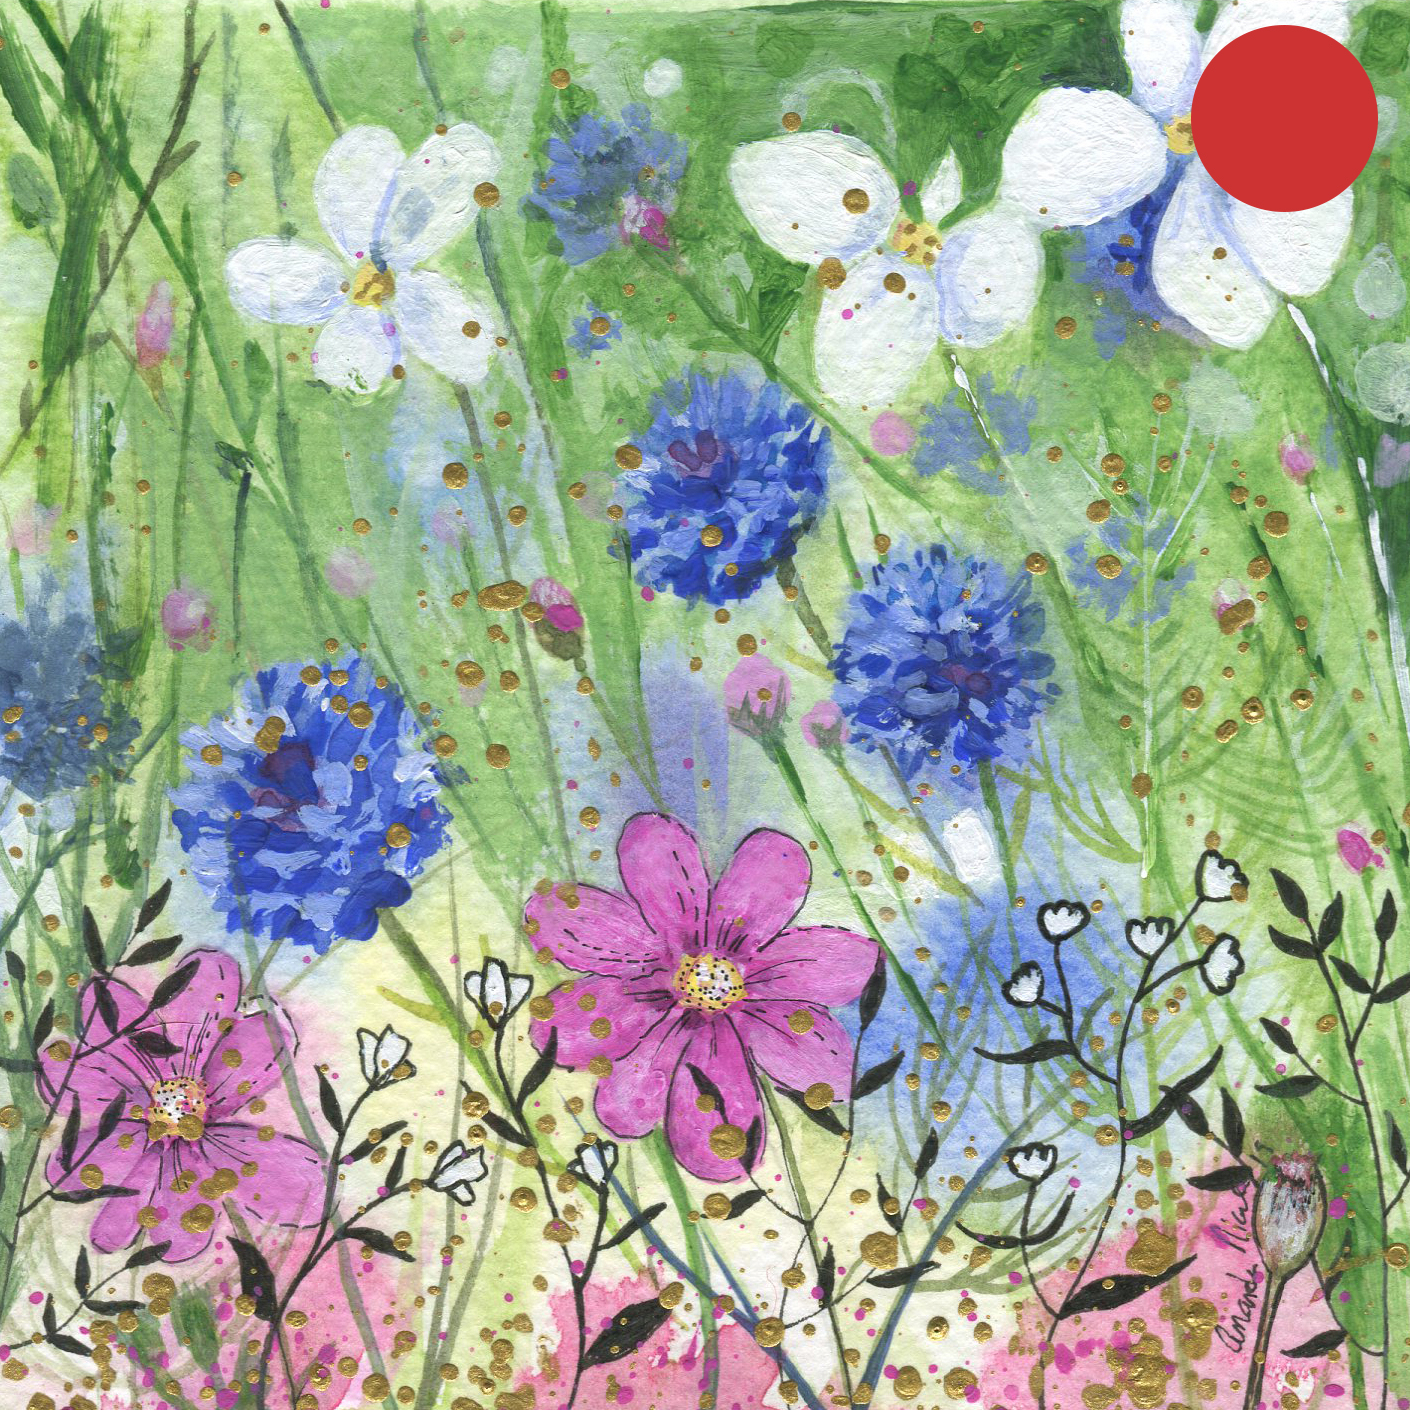 SOLD:  ORIGINAL WATERCOLOR, ACRYLIC AND PEN PAINTING 5X5 Inches, Ethereal Garden 4: